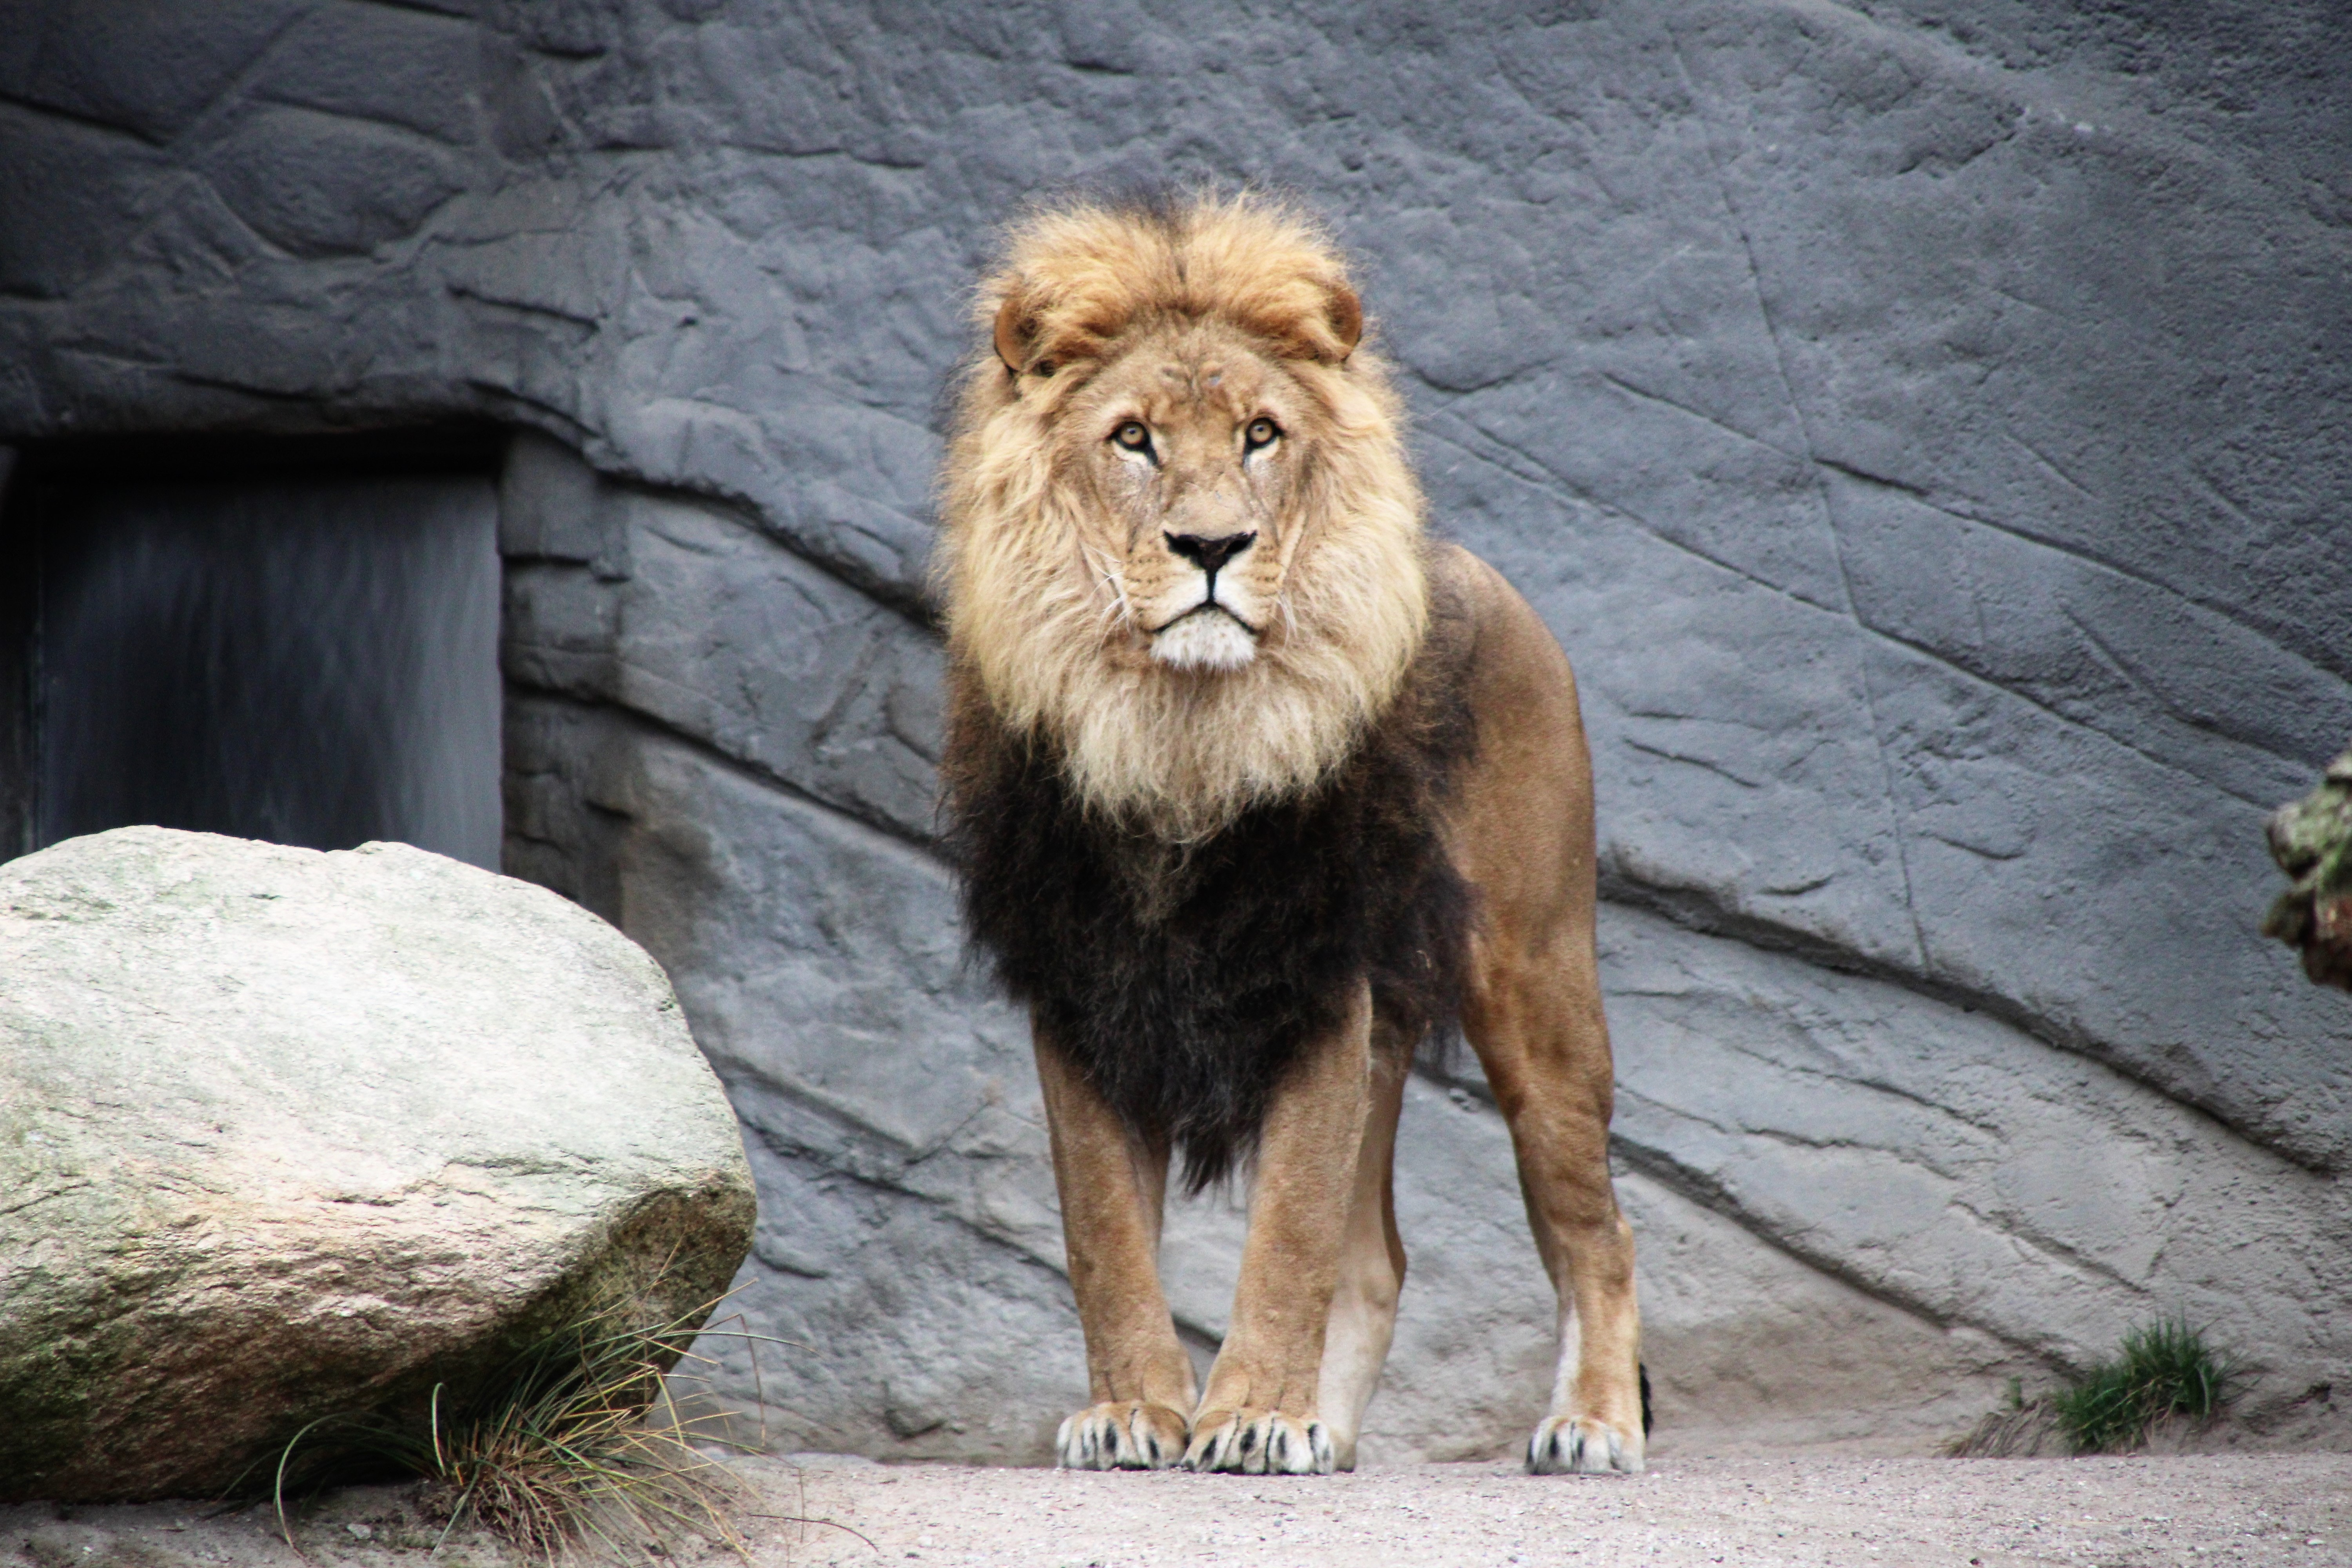 The Zoo Lion Is Like a Hurricane